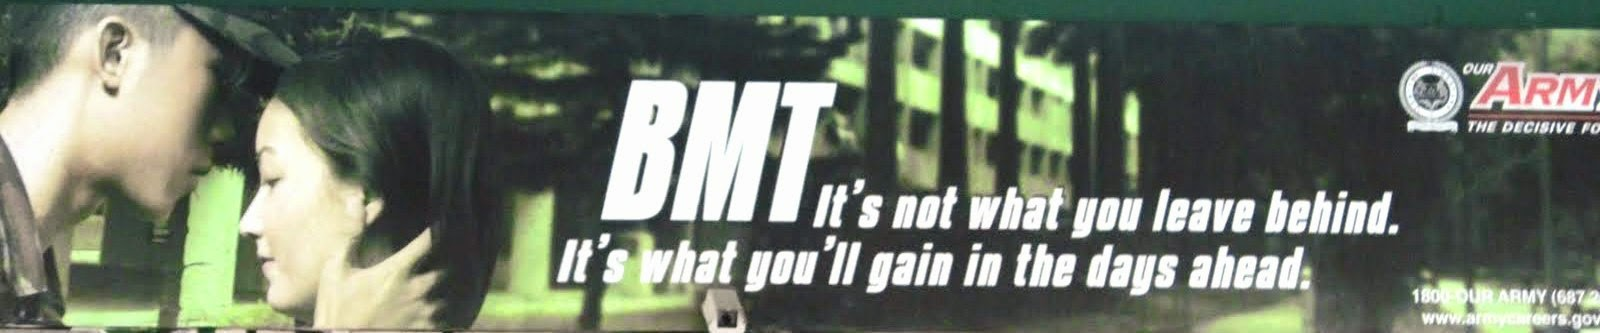 BMT is not what you leave behind. It's what you'll gain in the days ahead.